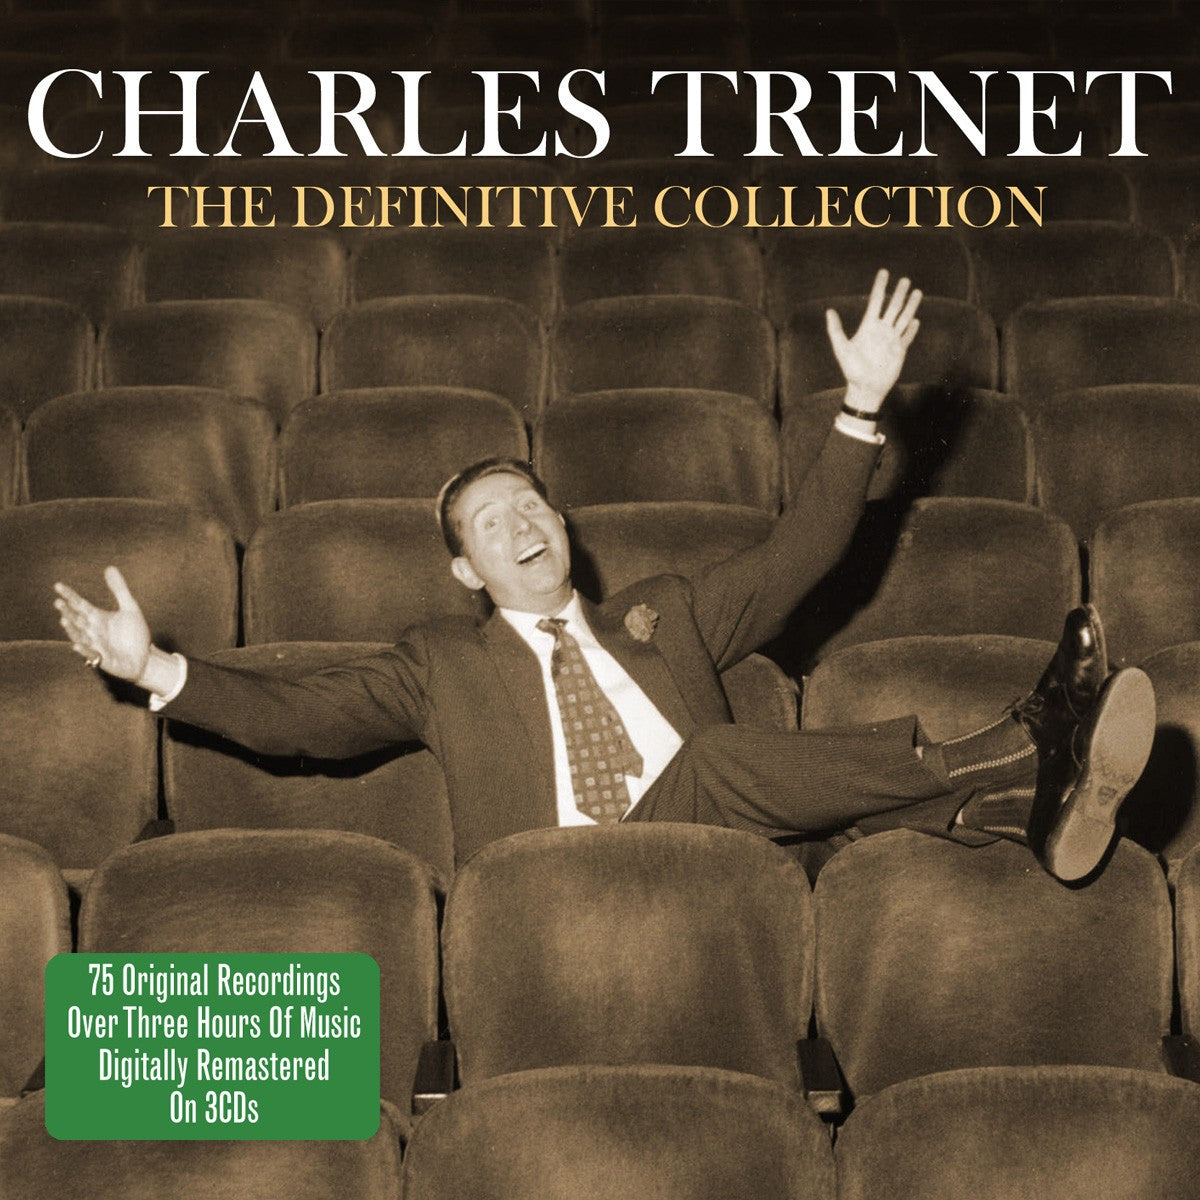 CHARLES TRENET: DEFINITIVE COLLECTION (3 CDS)